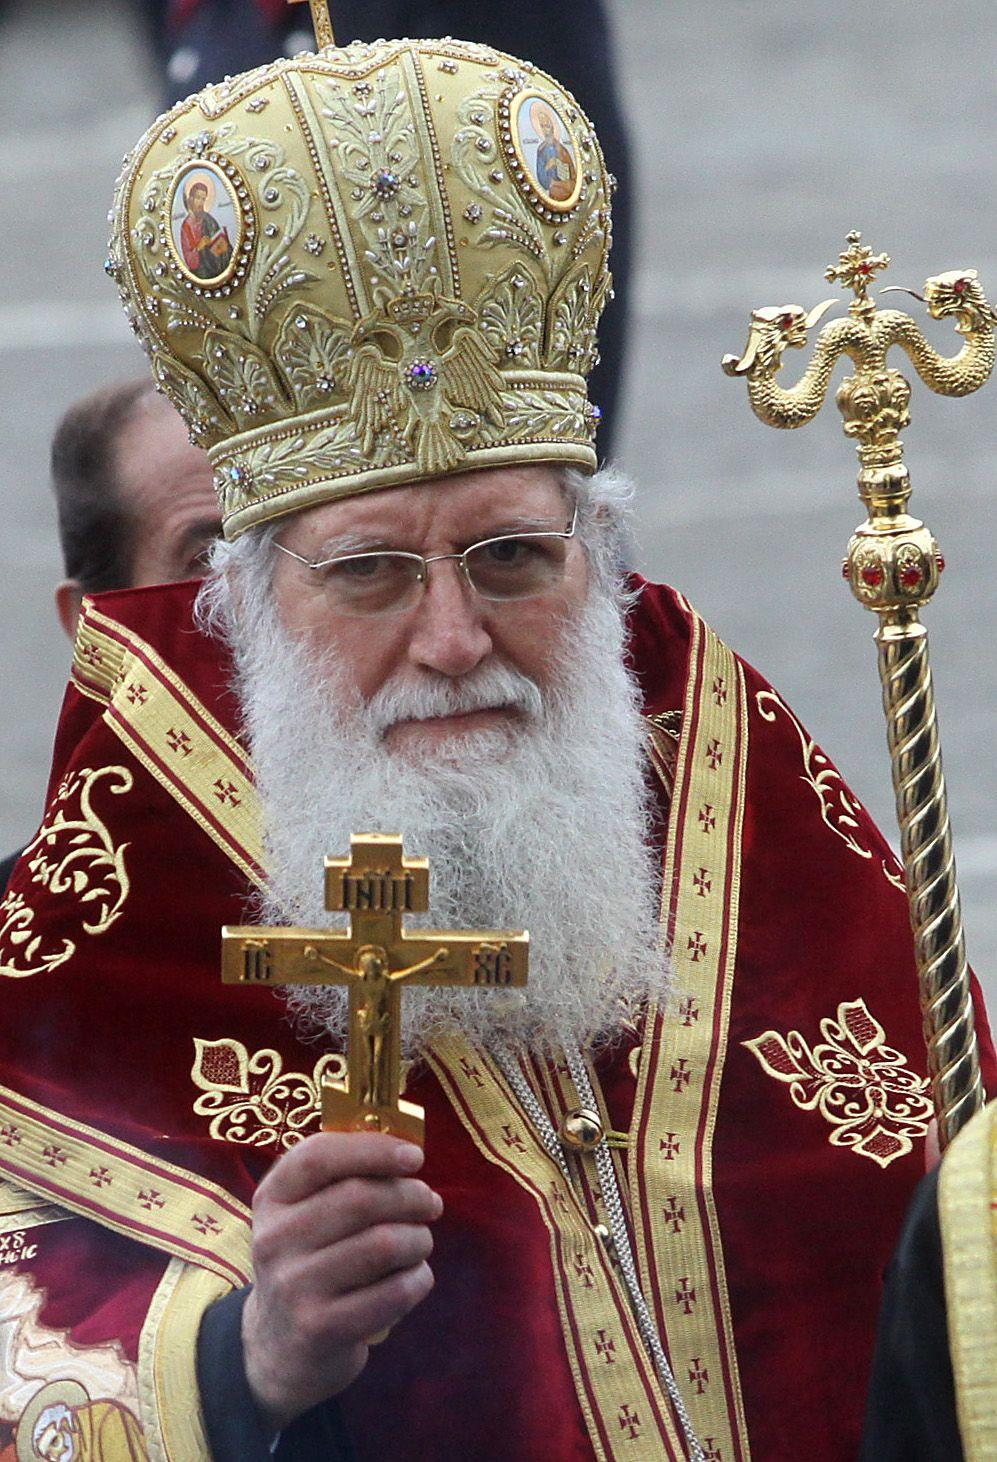 His Holiness Neophyte - Patriarch of Bulgaria